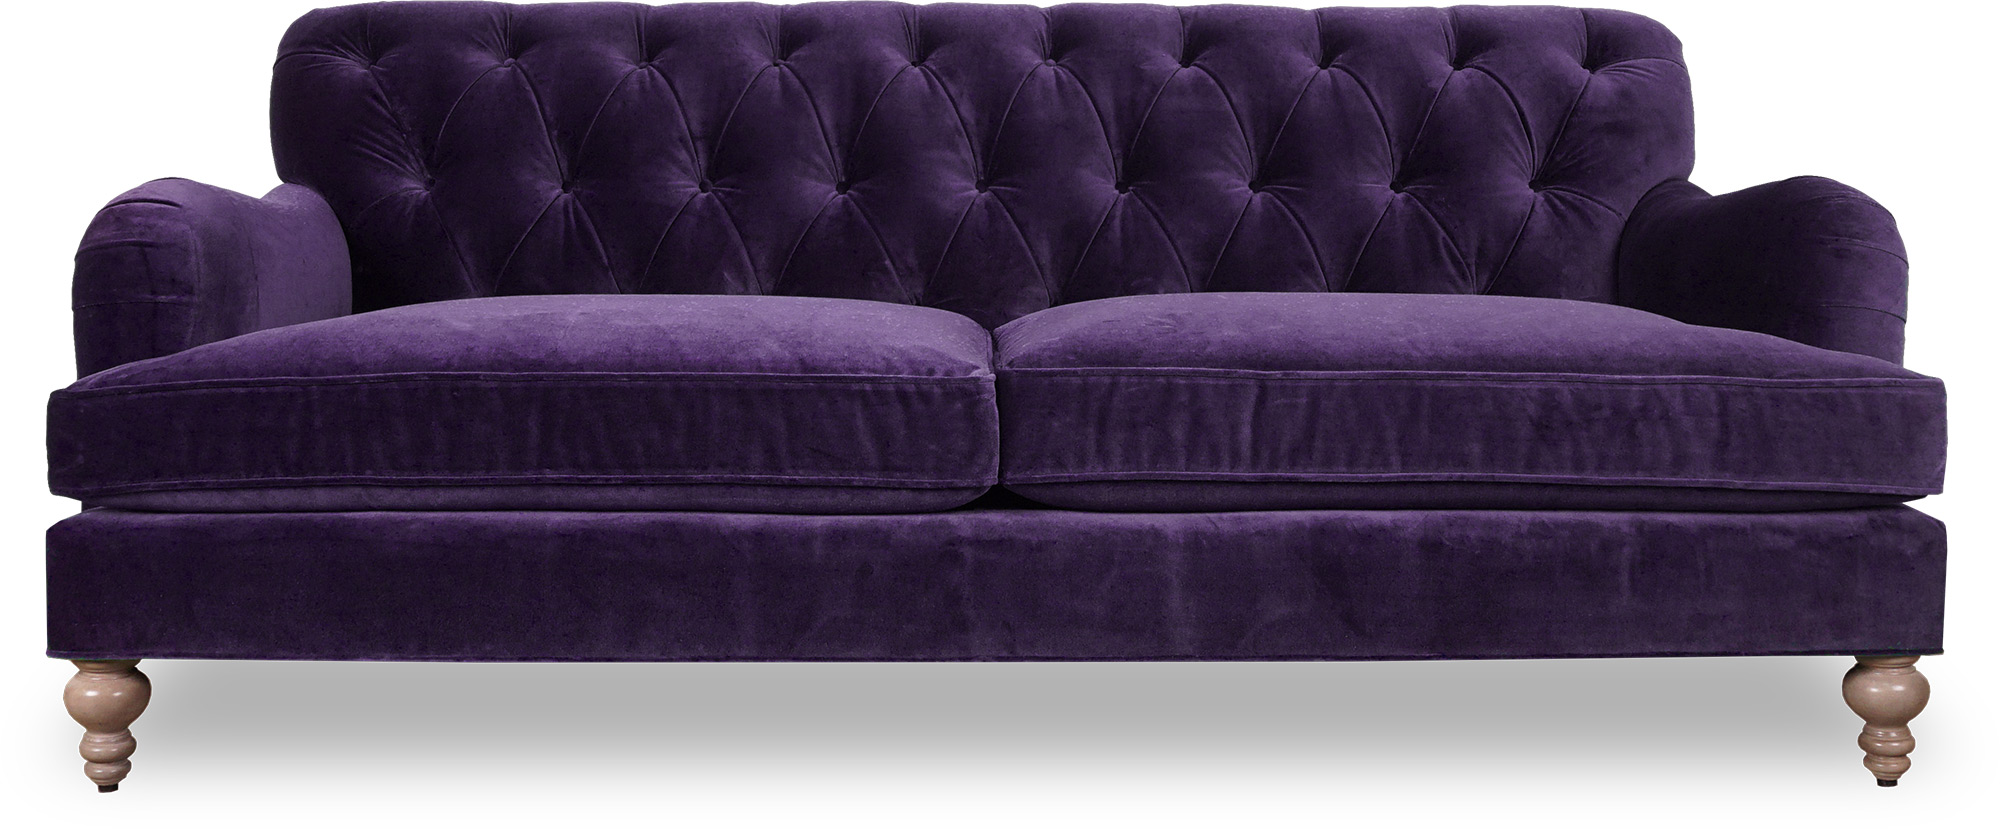 Alfie Sofas And Armchairs Roger Chris